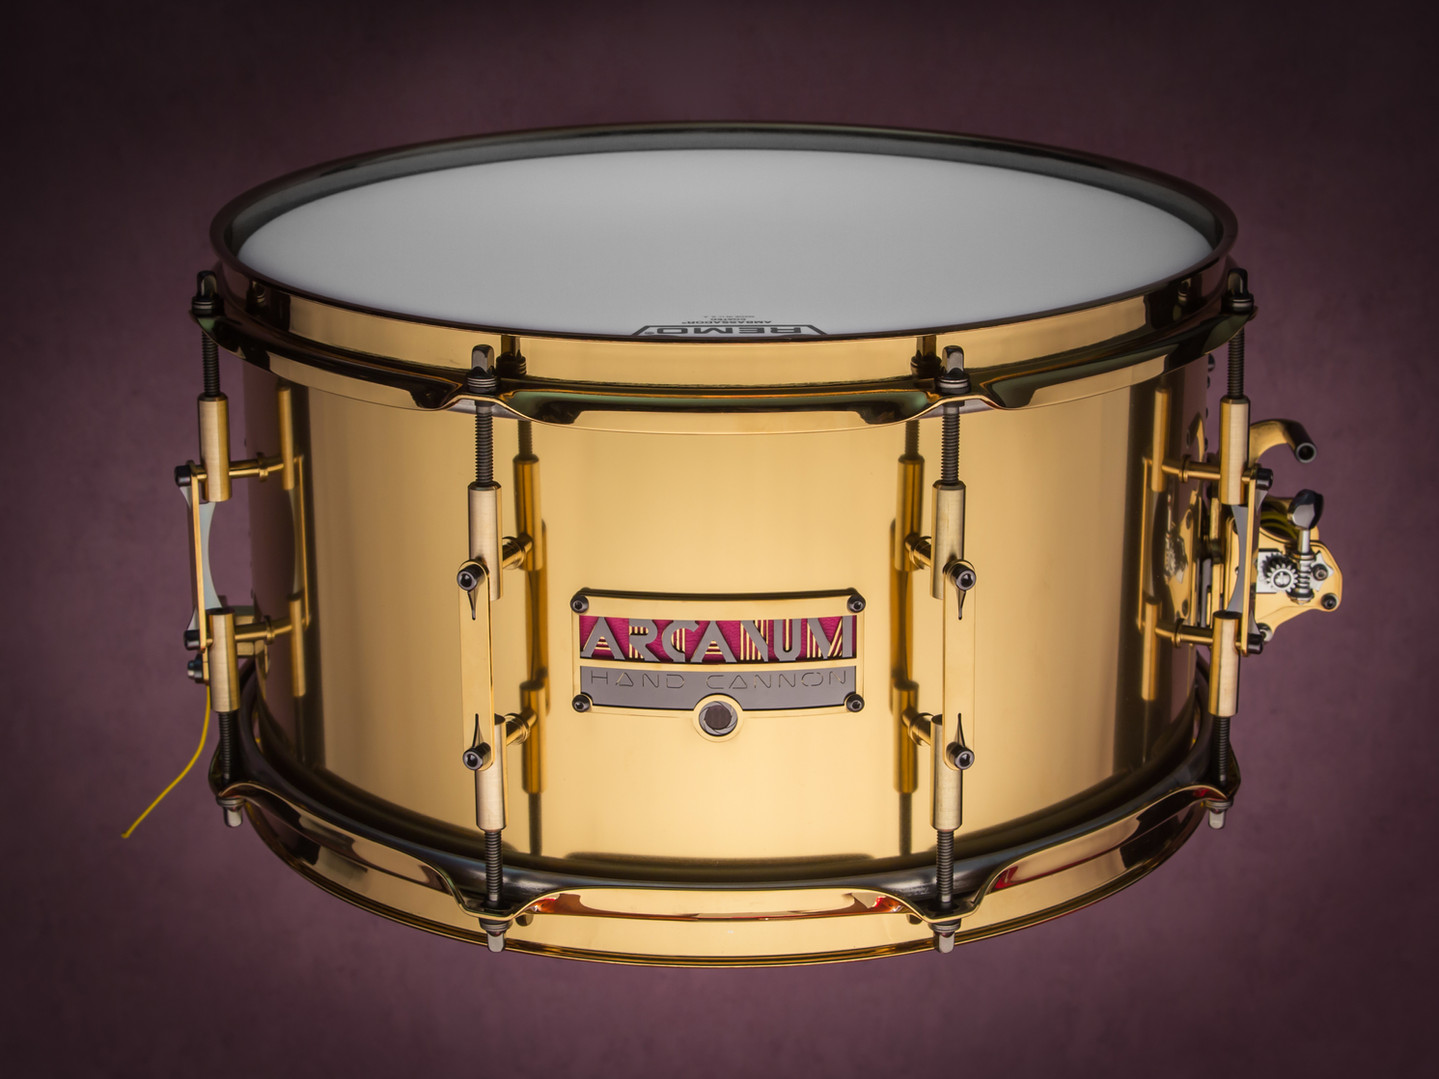 ARCANUM HC AIR Stainless Steel 13x7